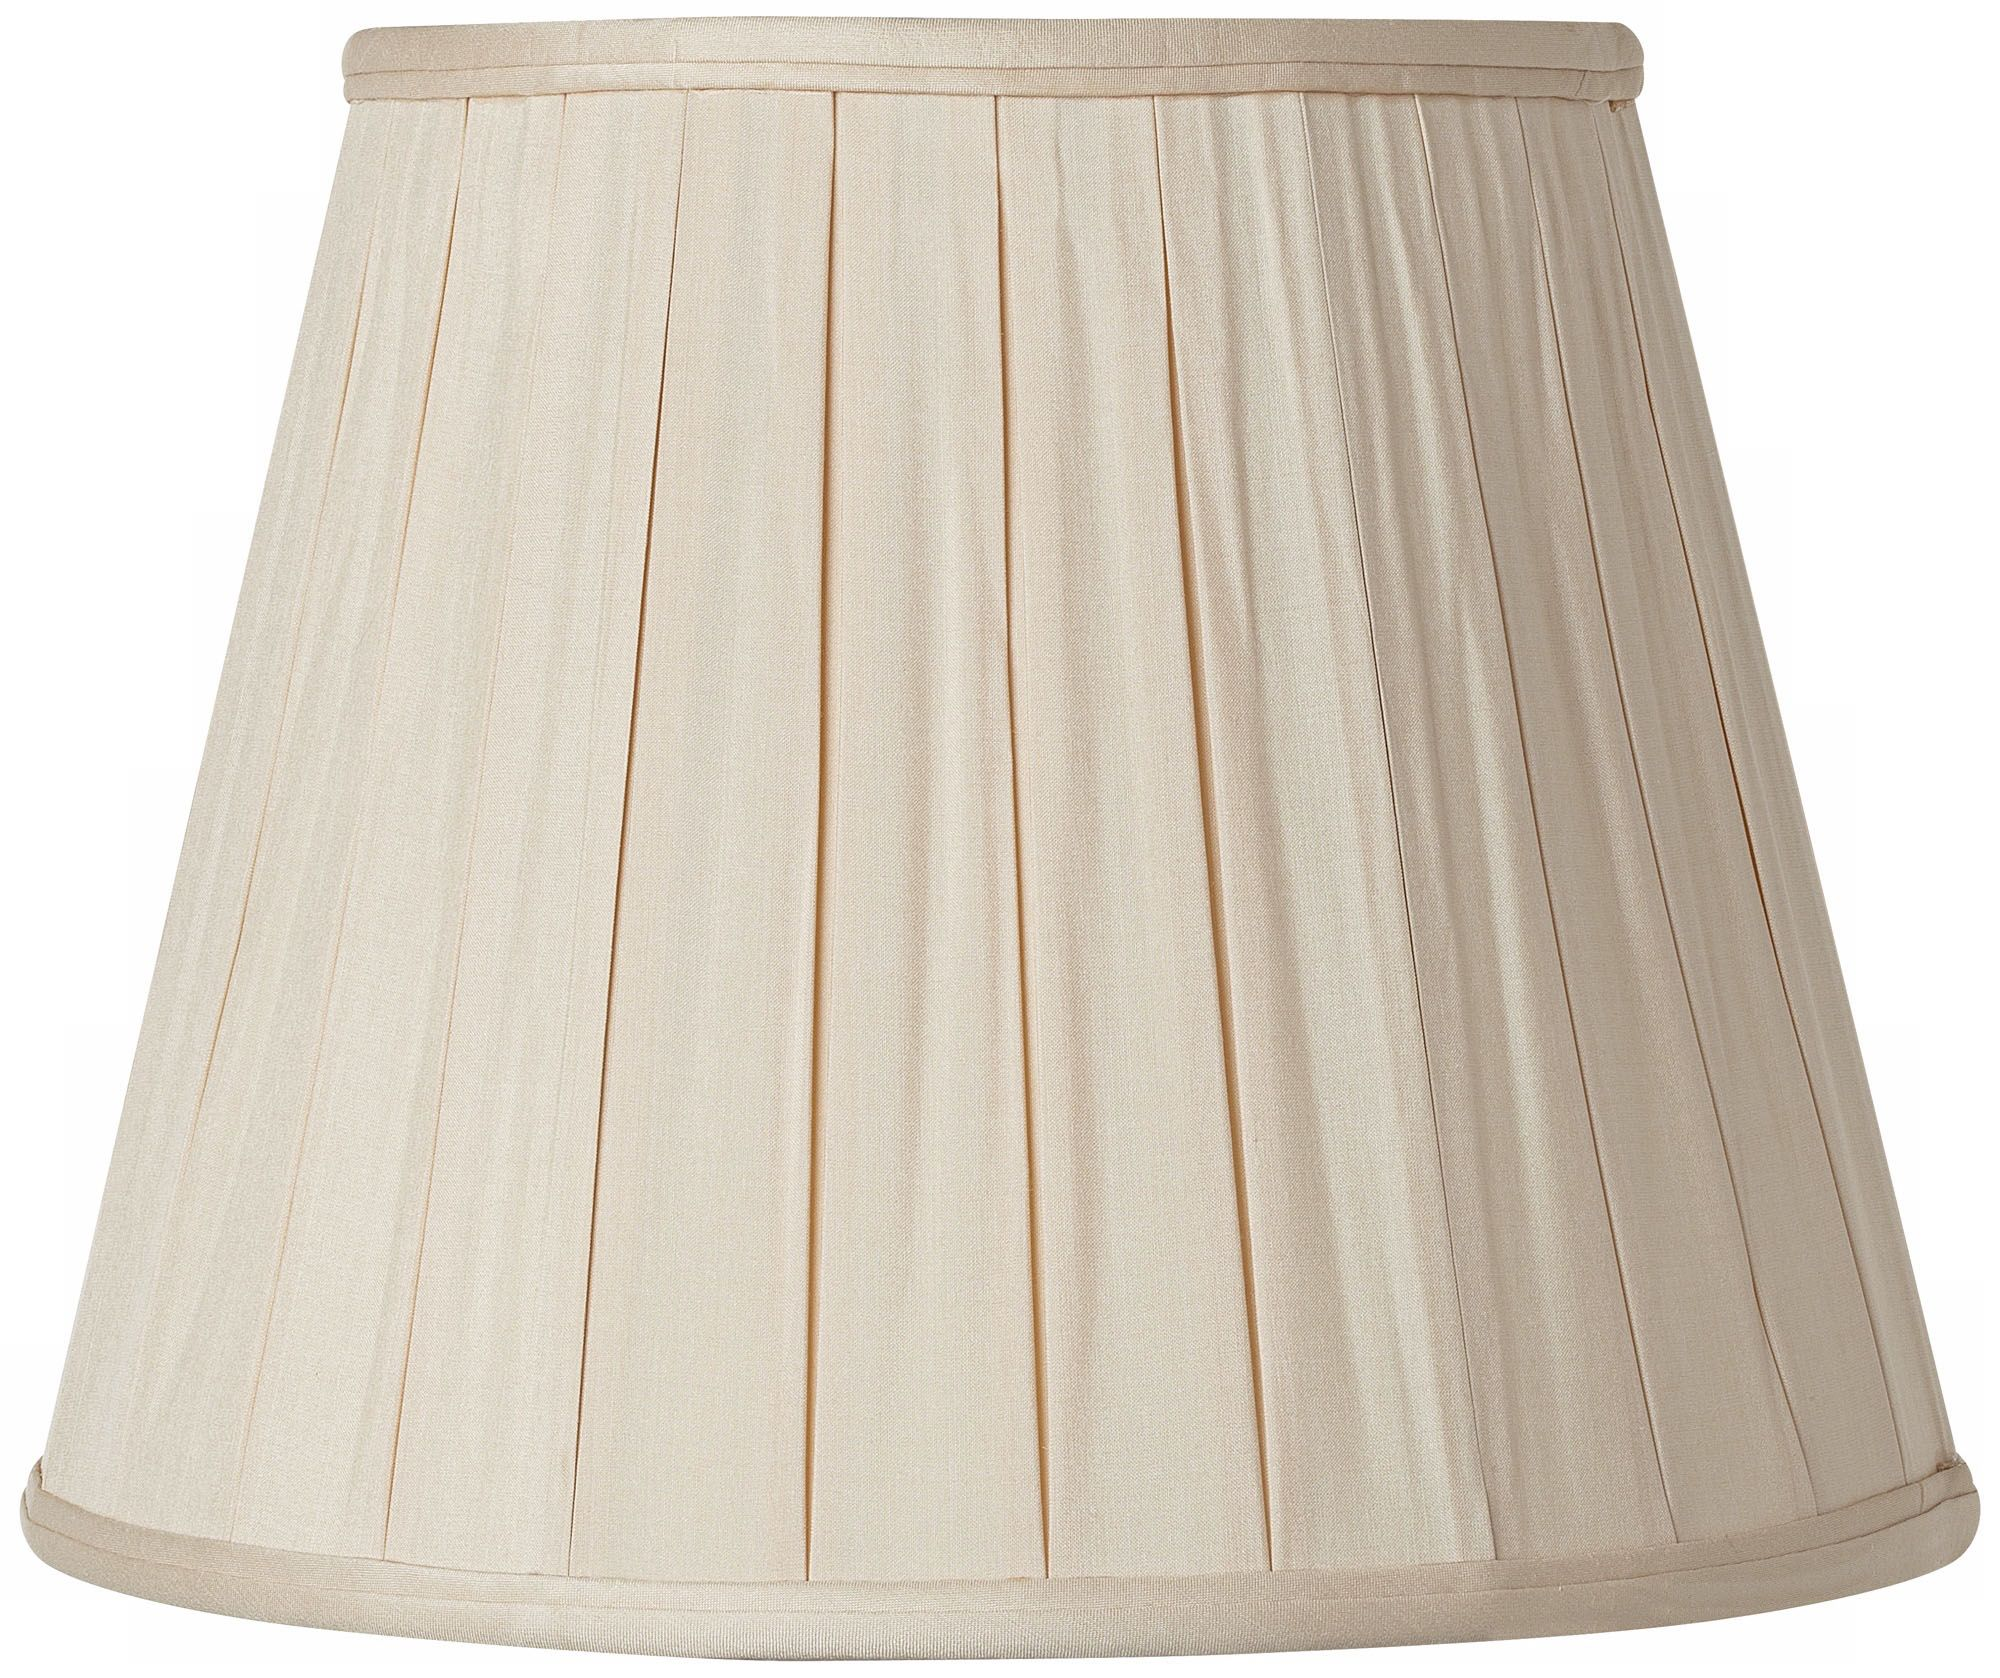 Charming Pleated Sand Silk Empire Lamp Shade 6x10x8 (Spider)